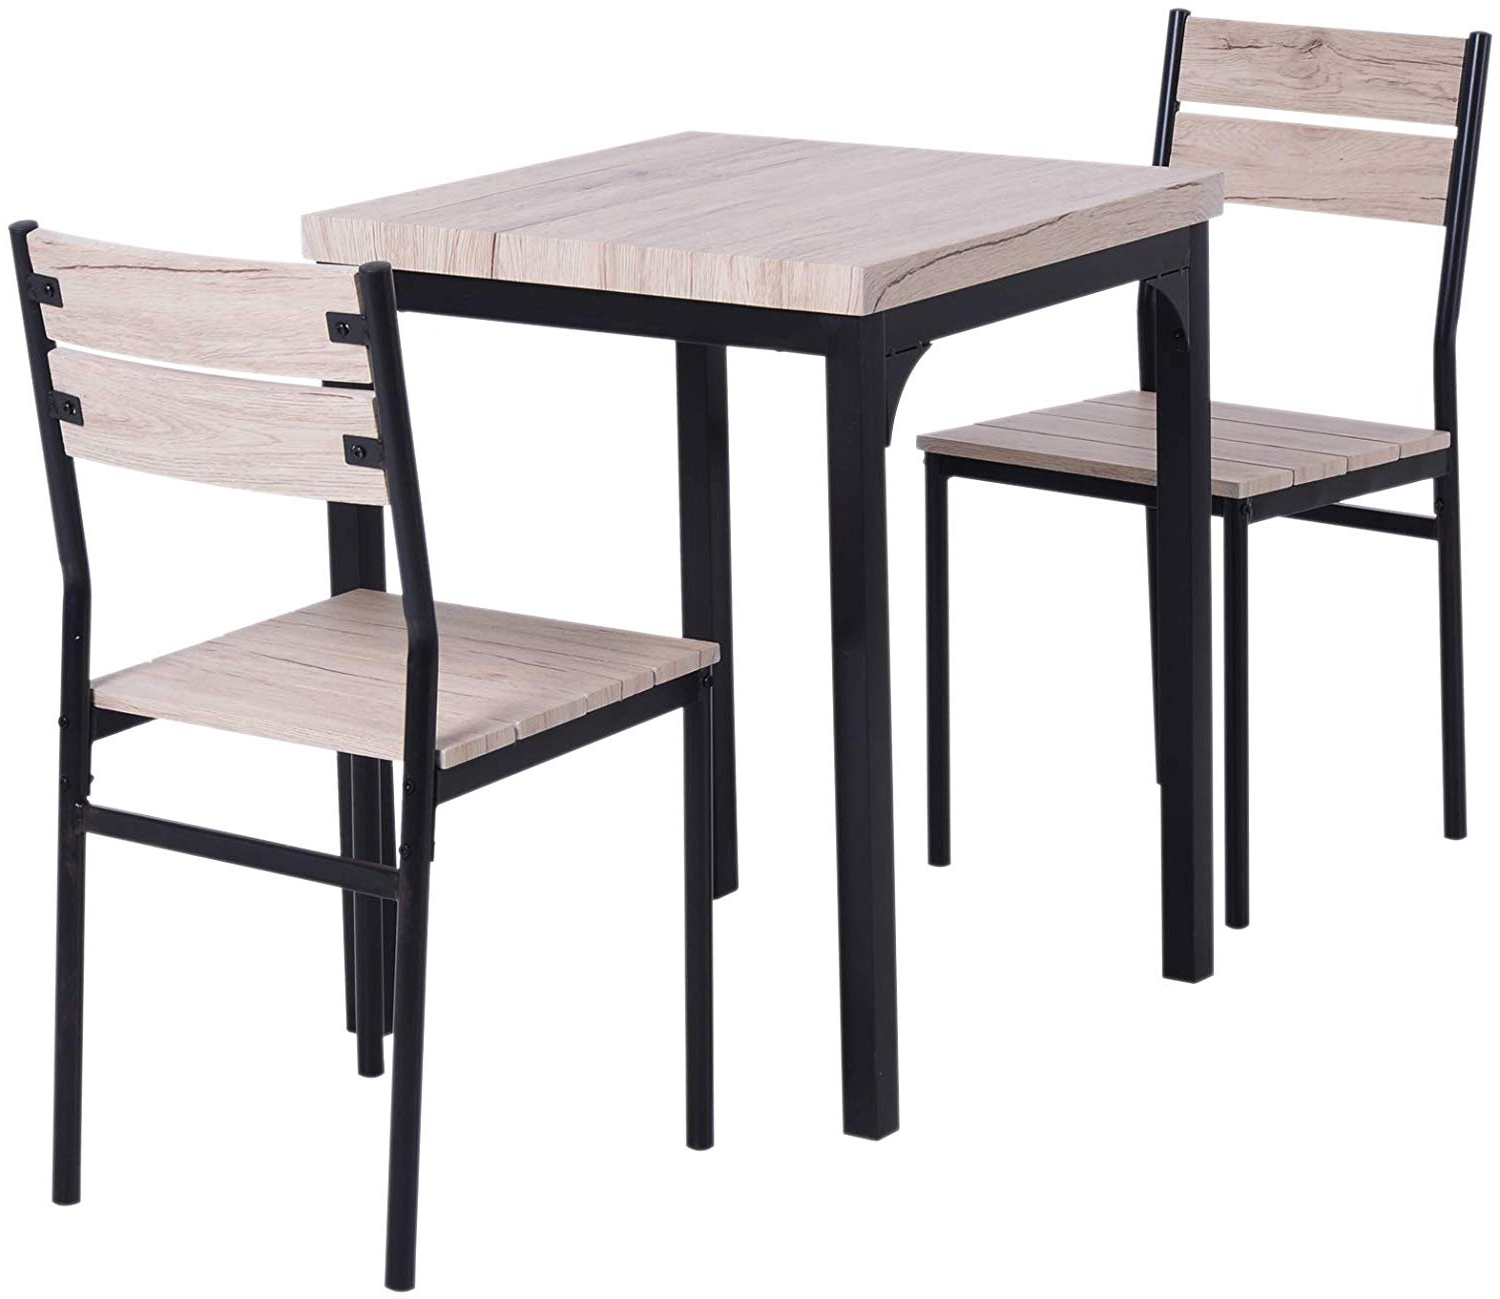 Preferred Rustic Country 8 Seating Casual Dining Tables Pertaining To Homcom Rustic Country Wood Top 3 Piece Kitchen Table Dining Set W/chairs (View 5 of 30)